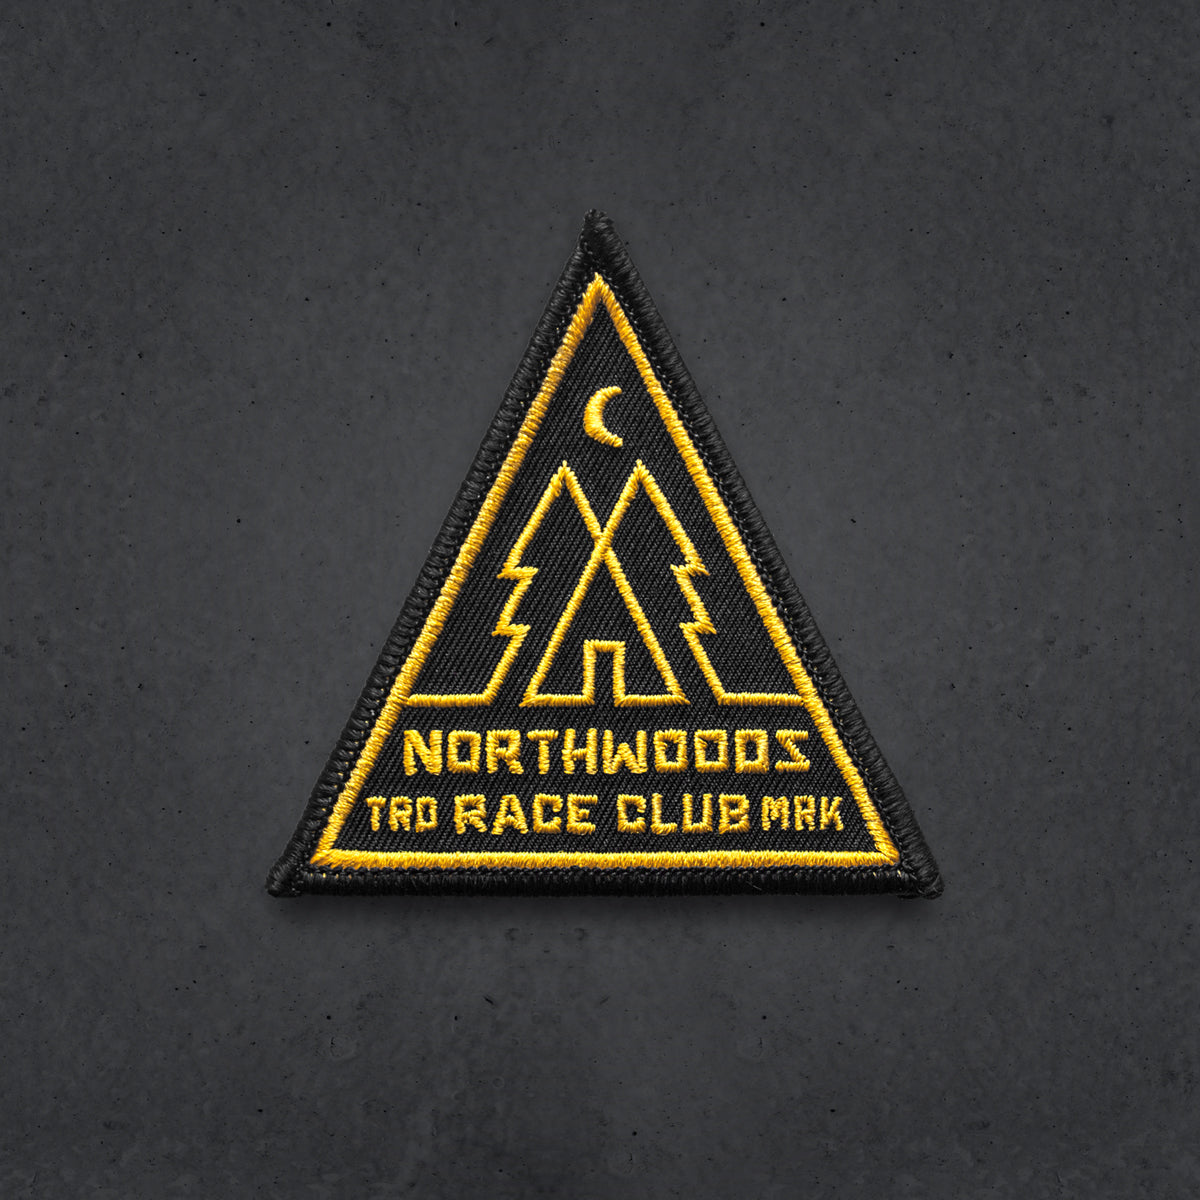 NWRC HQ Patch